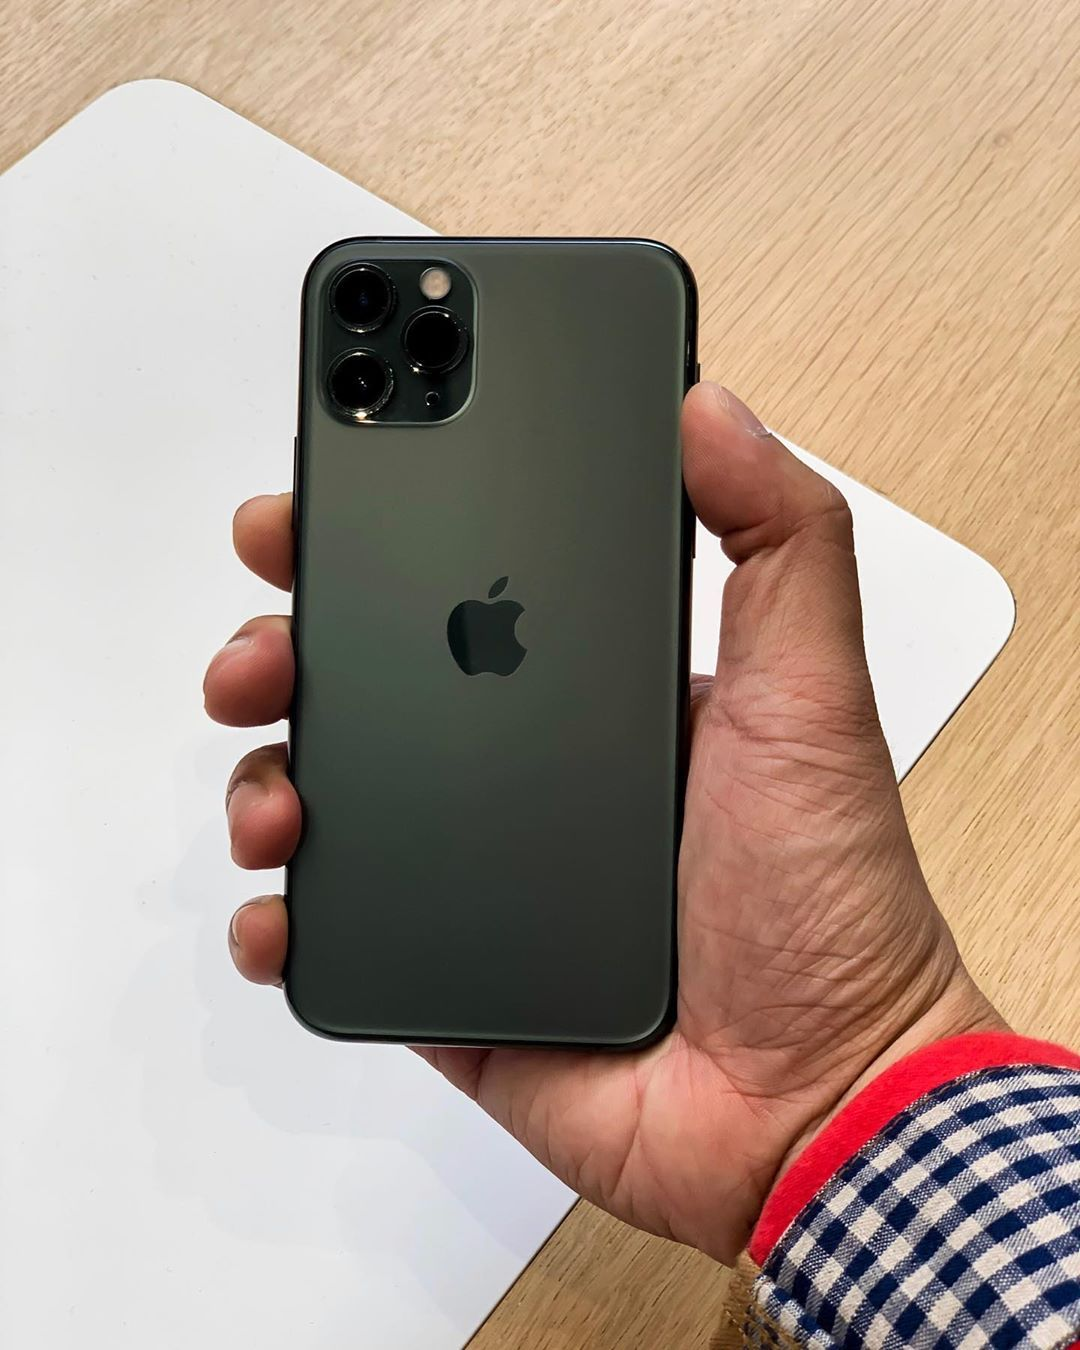 Iphone 11 Pro Max Iphone Iphone 11 Green